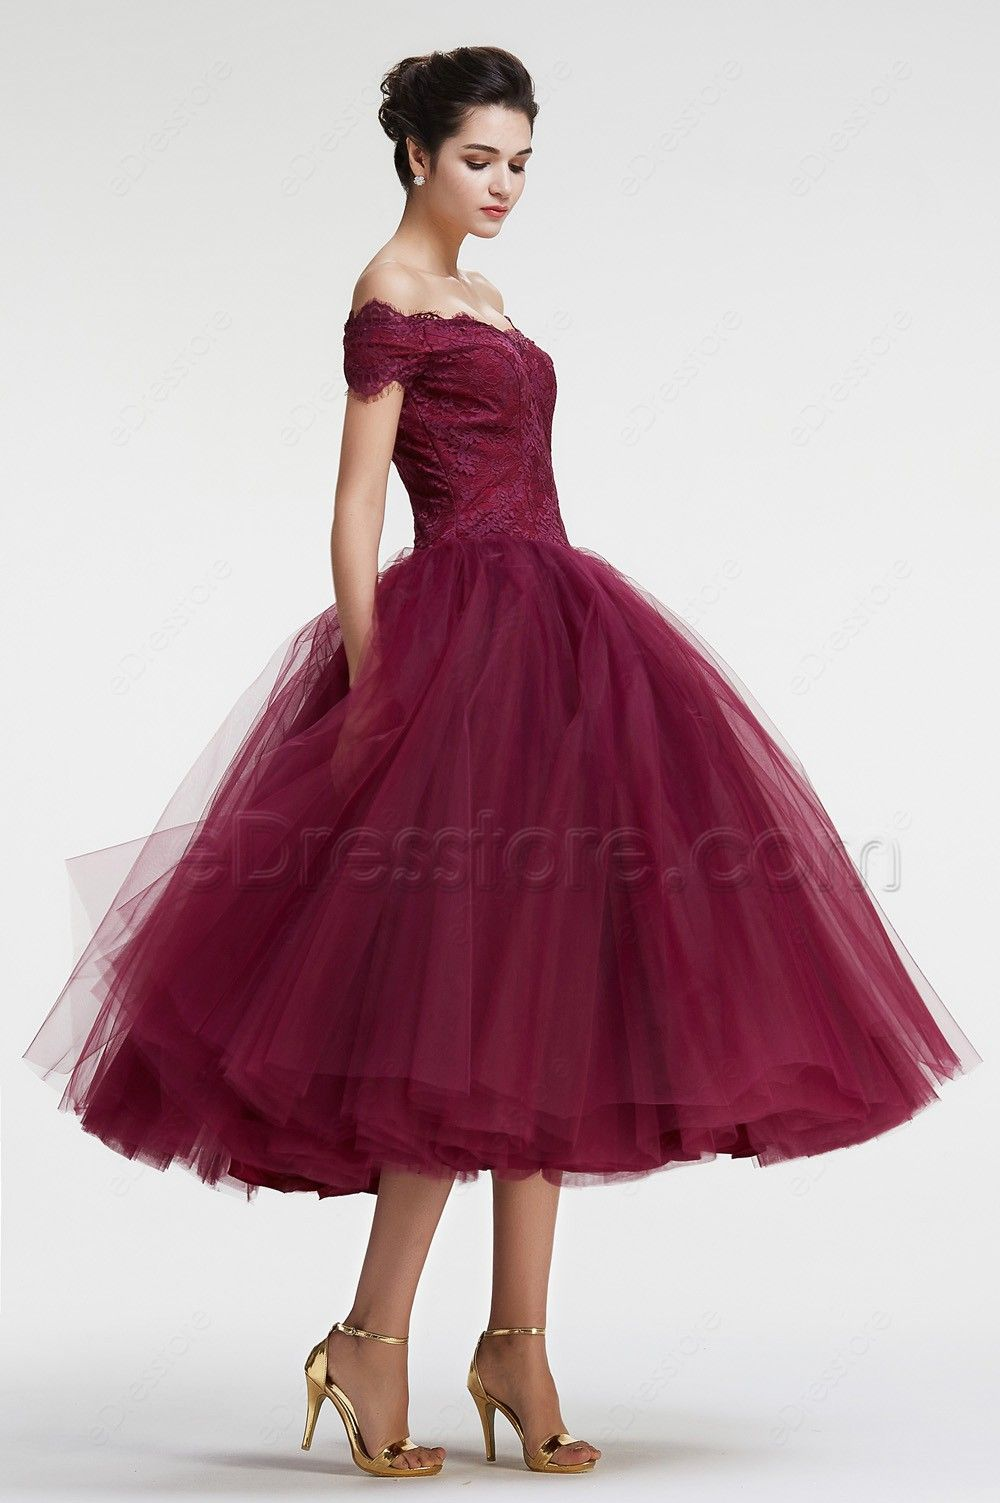 f2410a4cfa The burgundy prom dress features off the shoulder neckline with scalloped  lace